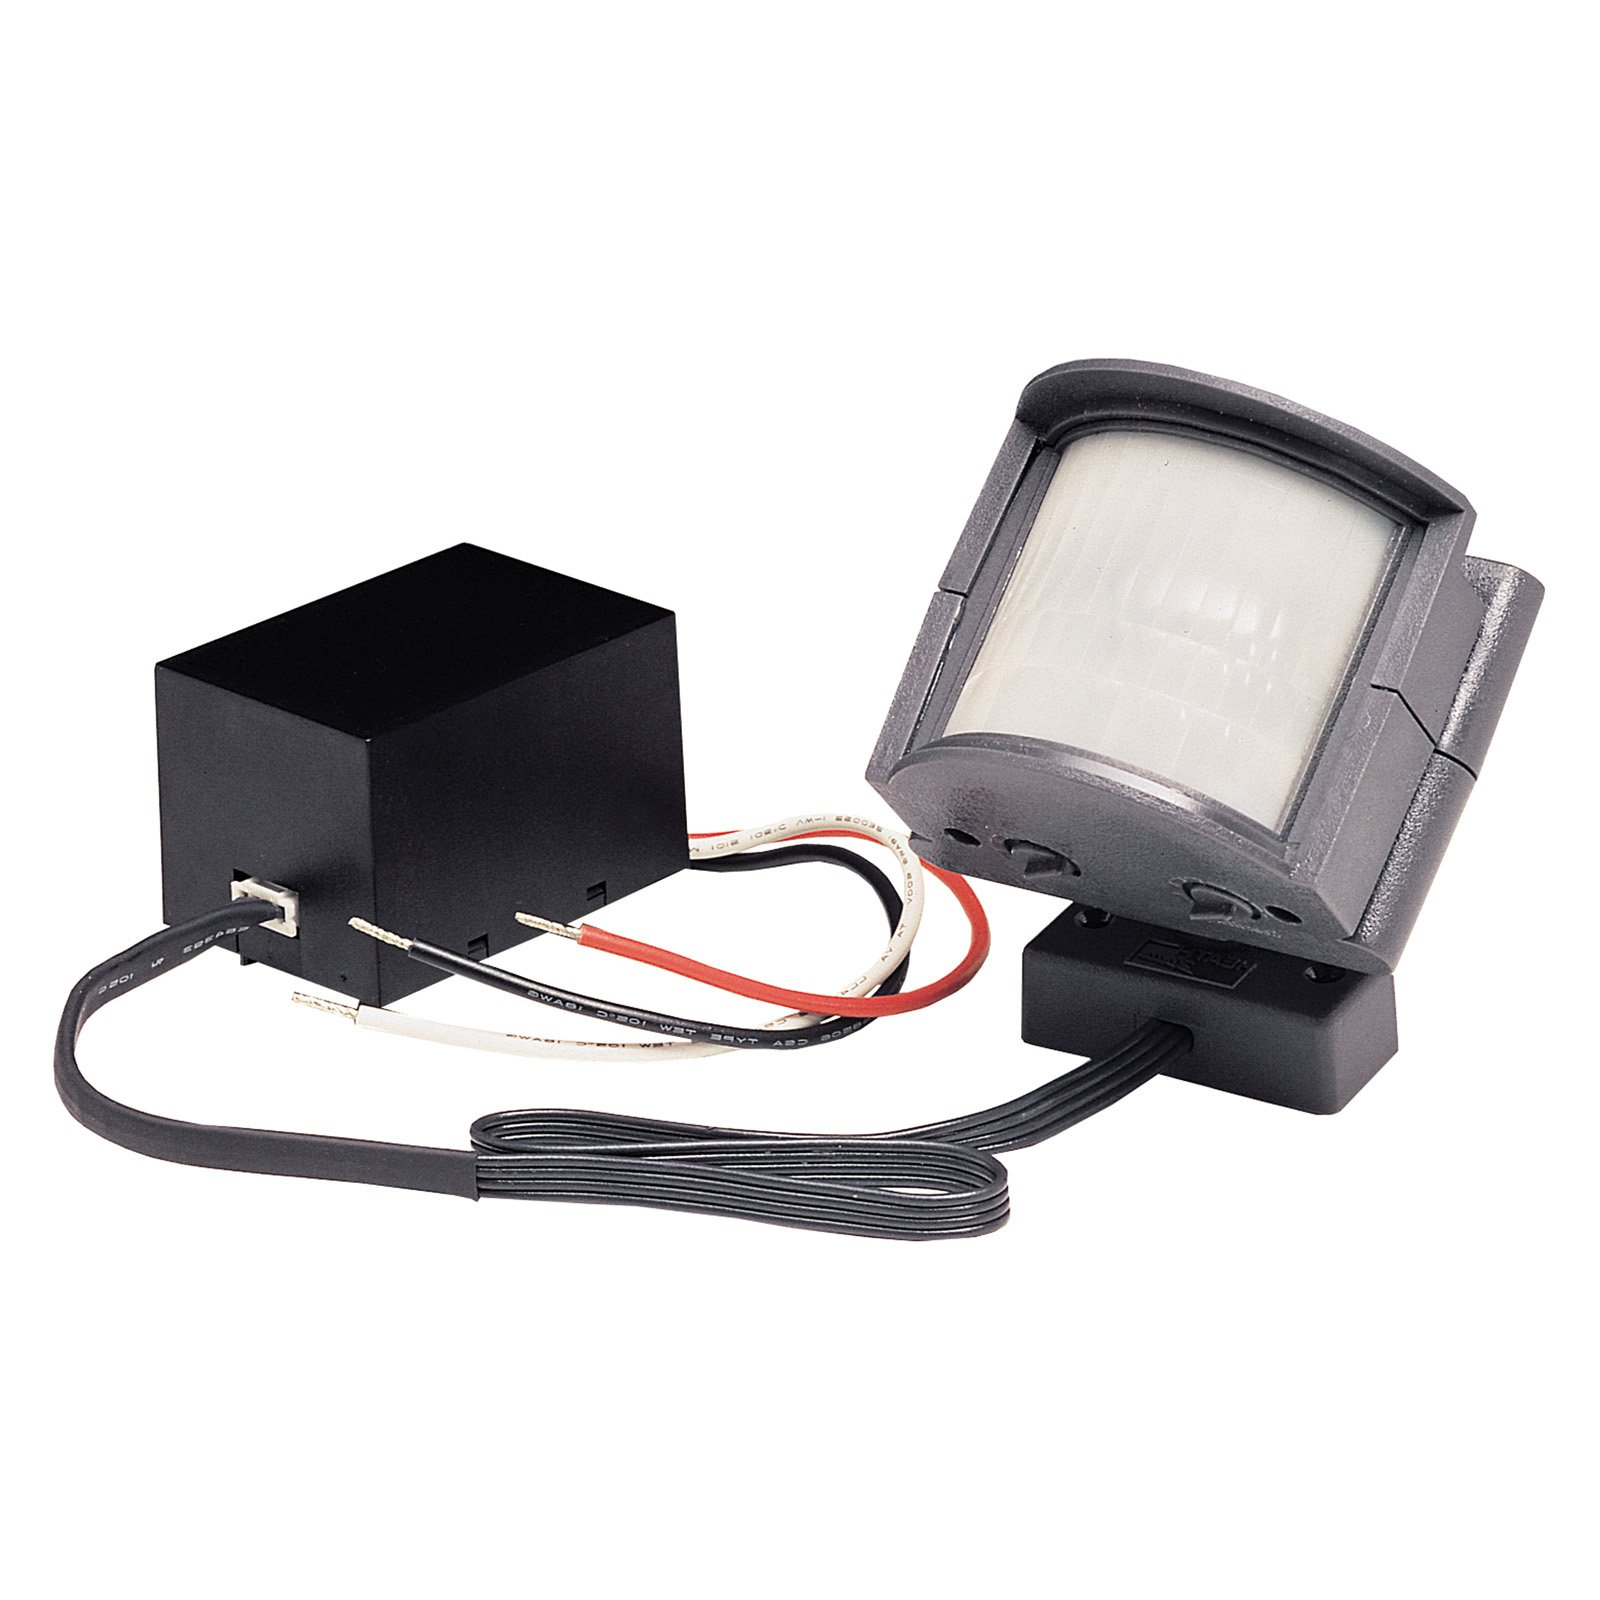 hight resolution of heathco sl 5210 gr b 110 degree wire in motion sensor light control walmart com